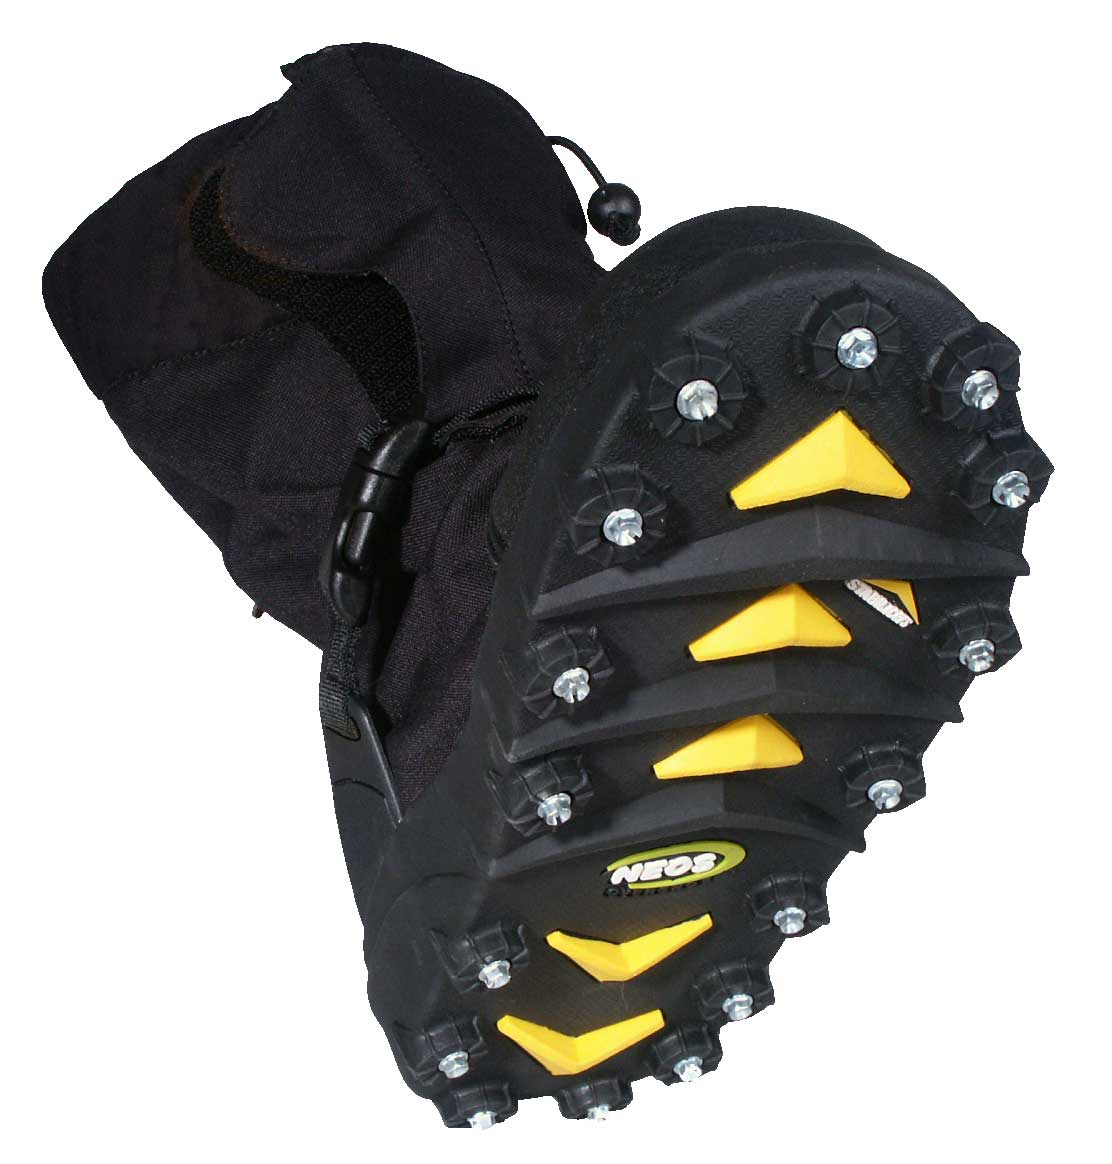 STABILicers Overshoe w/ Cleats, 2XL.  Men's sizes 13.5 - 15